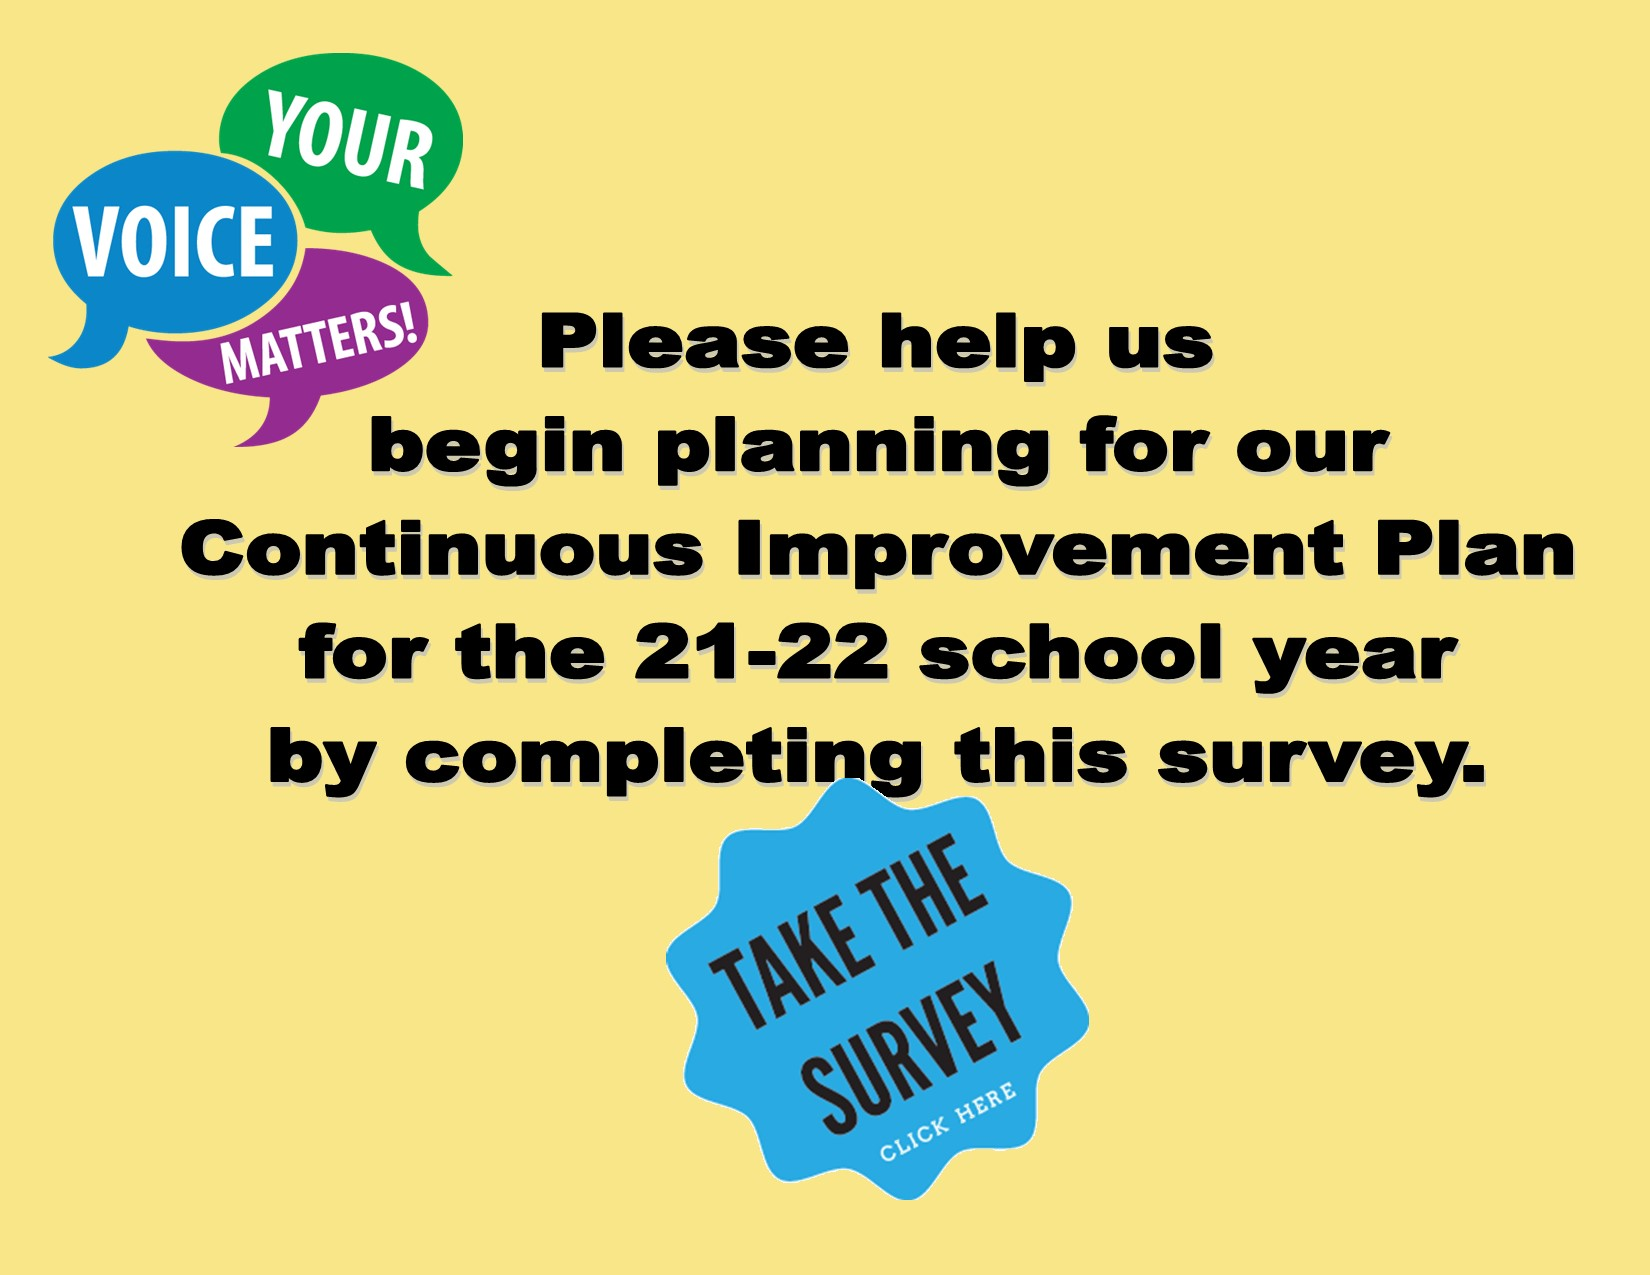 help us plan for our continued improvement plan. Take the survey, click here.